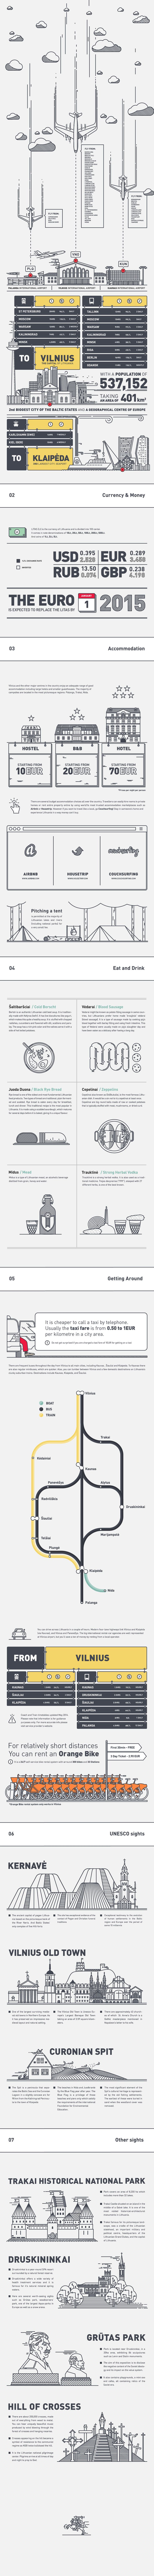 To Lithuania Infographic